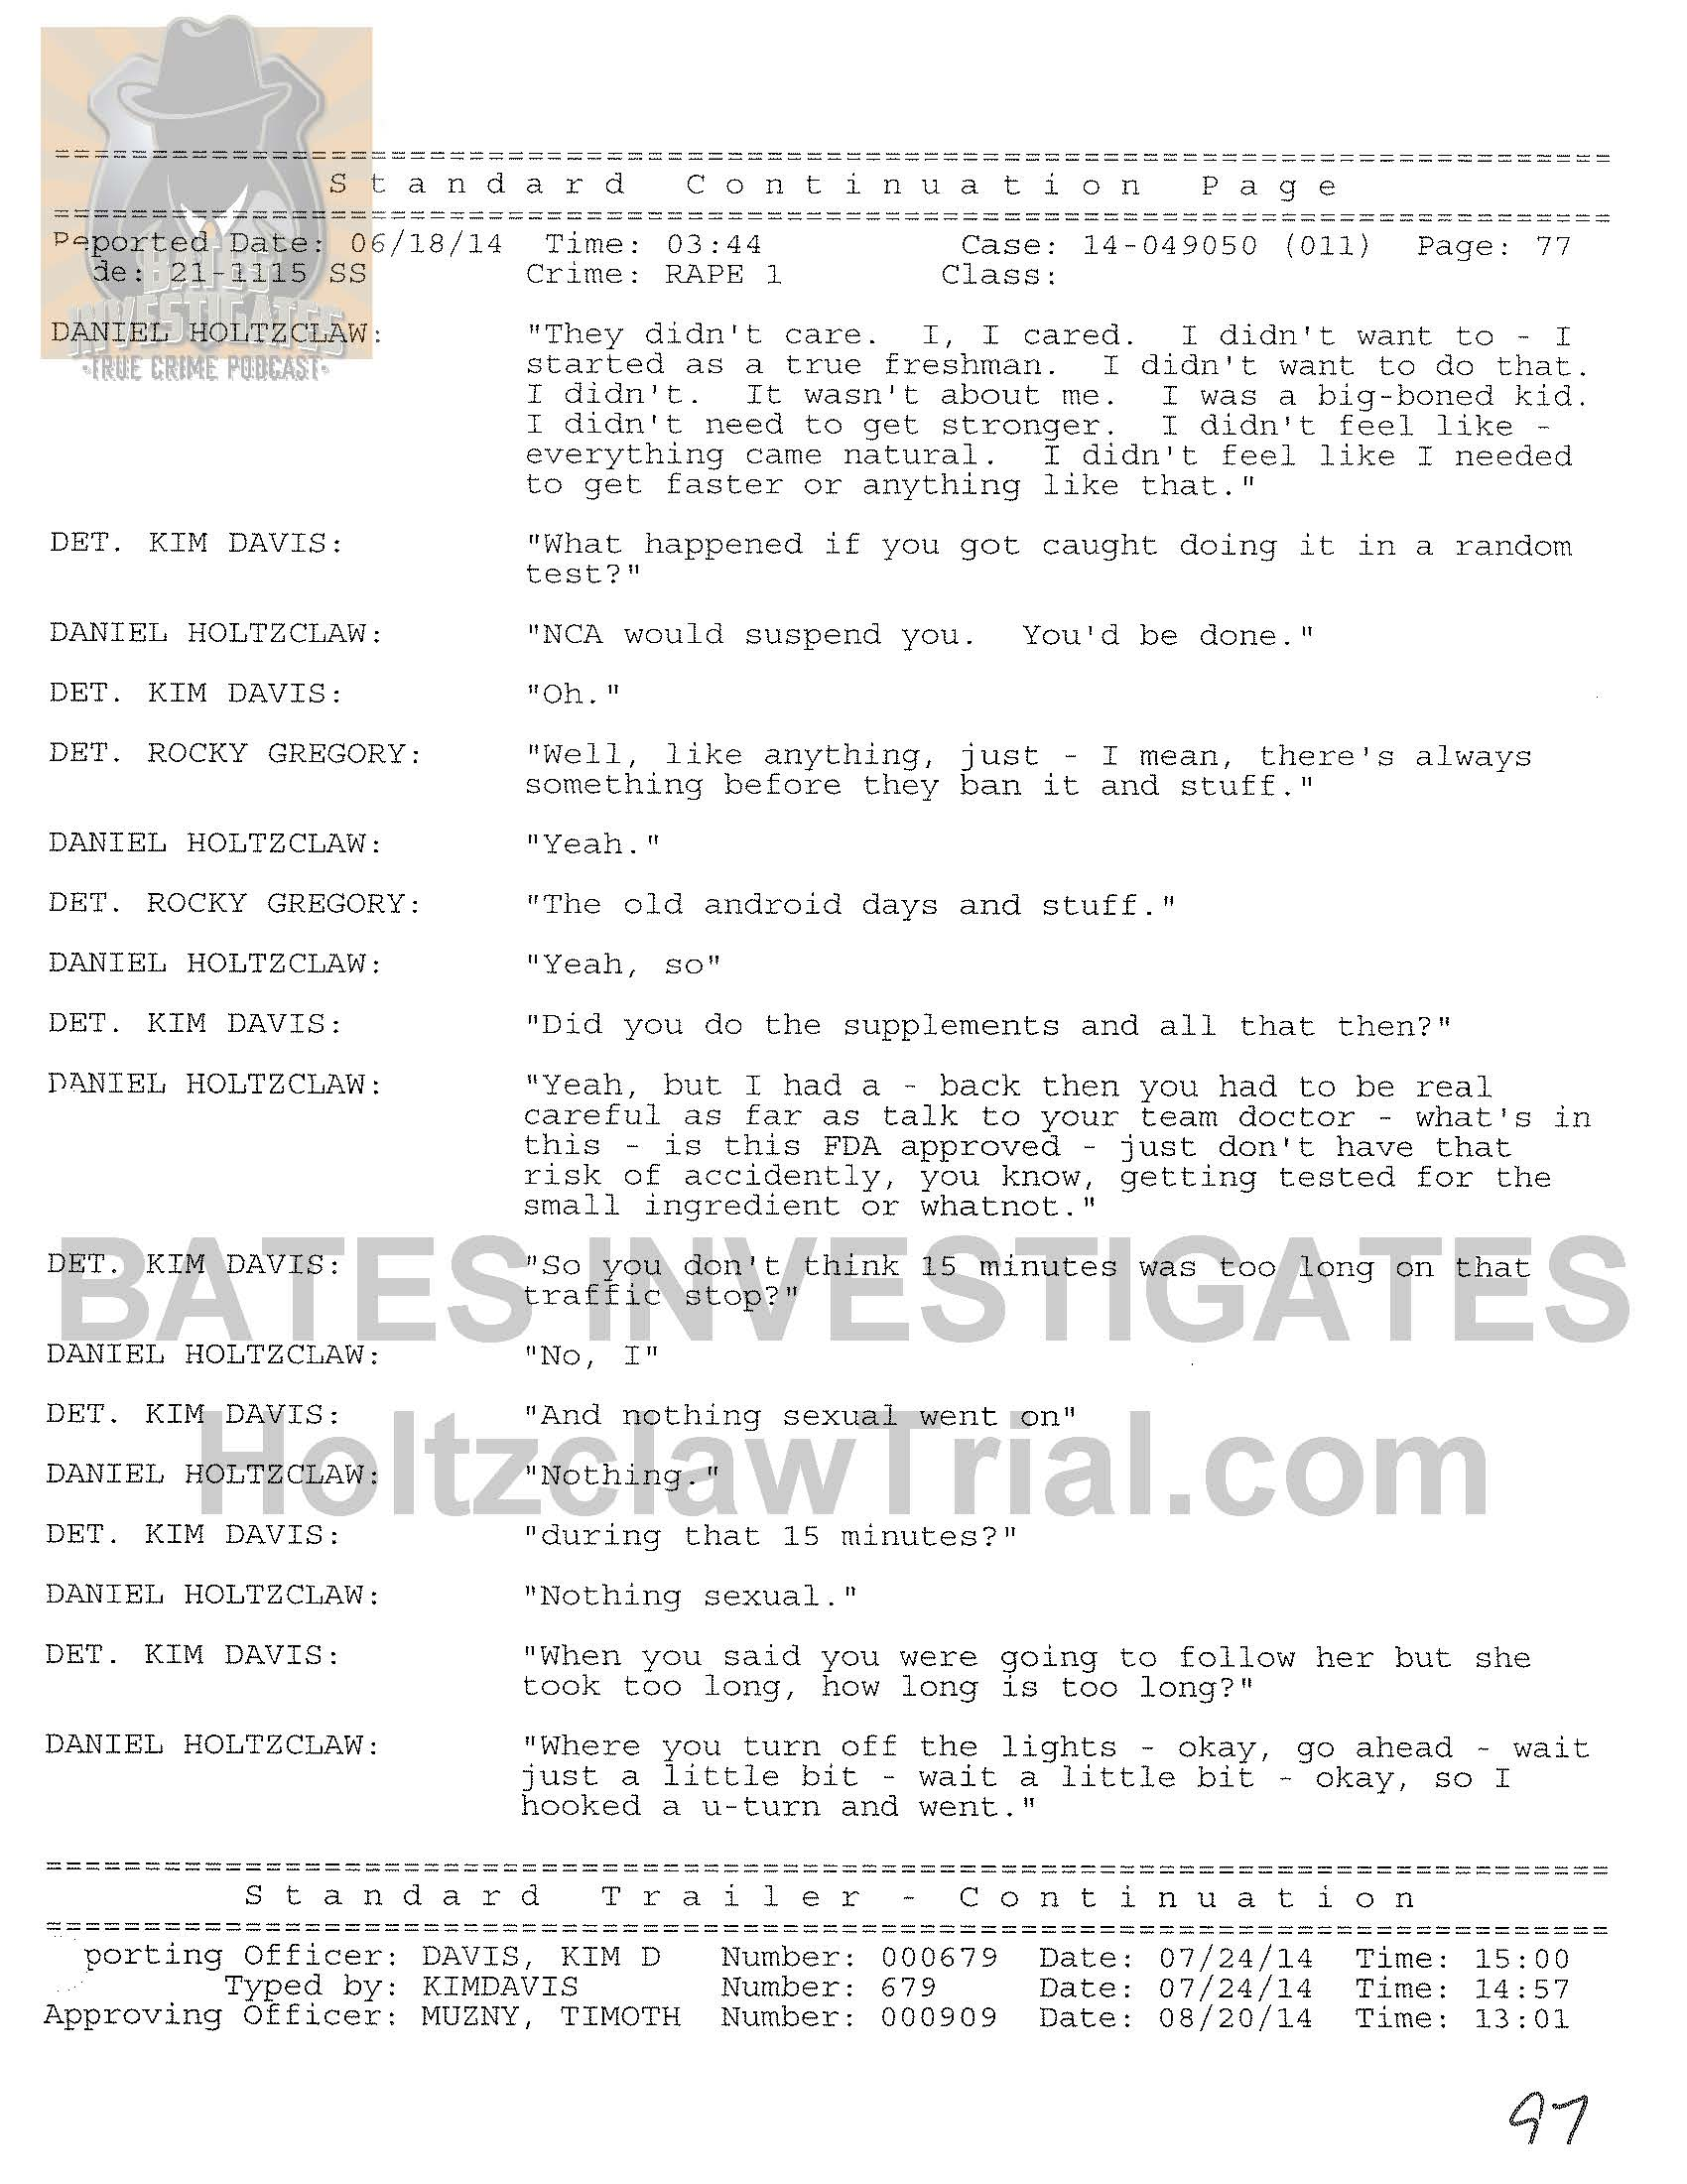 Holtzclaw Interrogation Transcript - Ep02 Redacted_Page_77.jpg